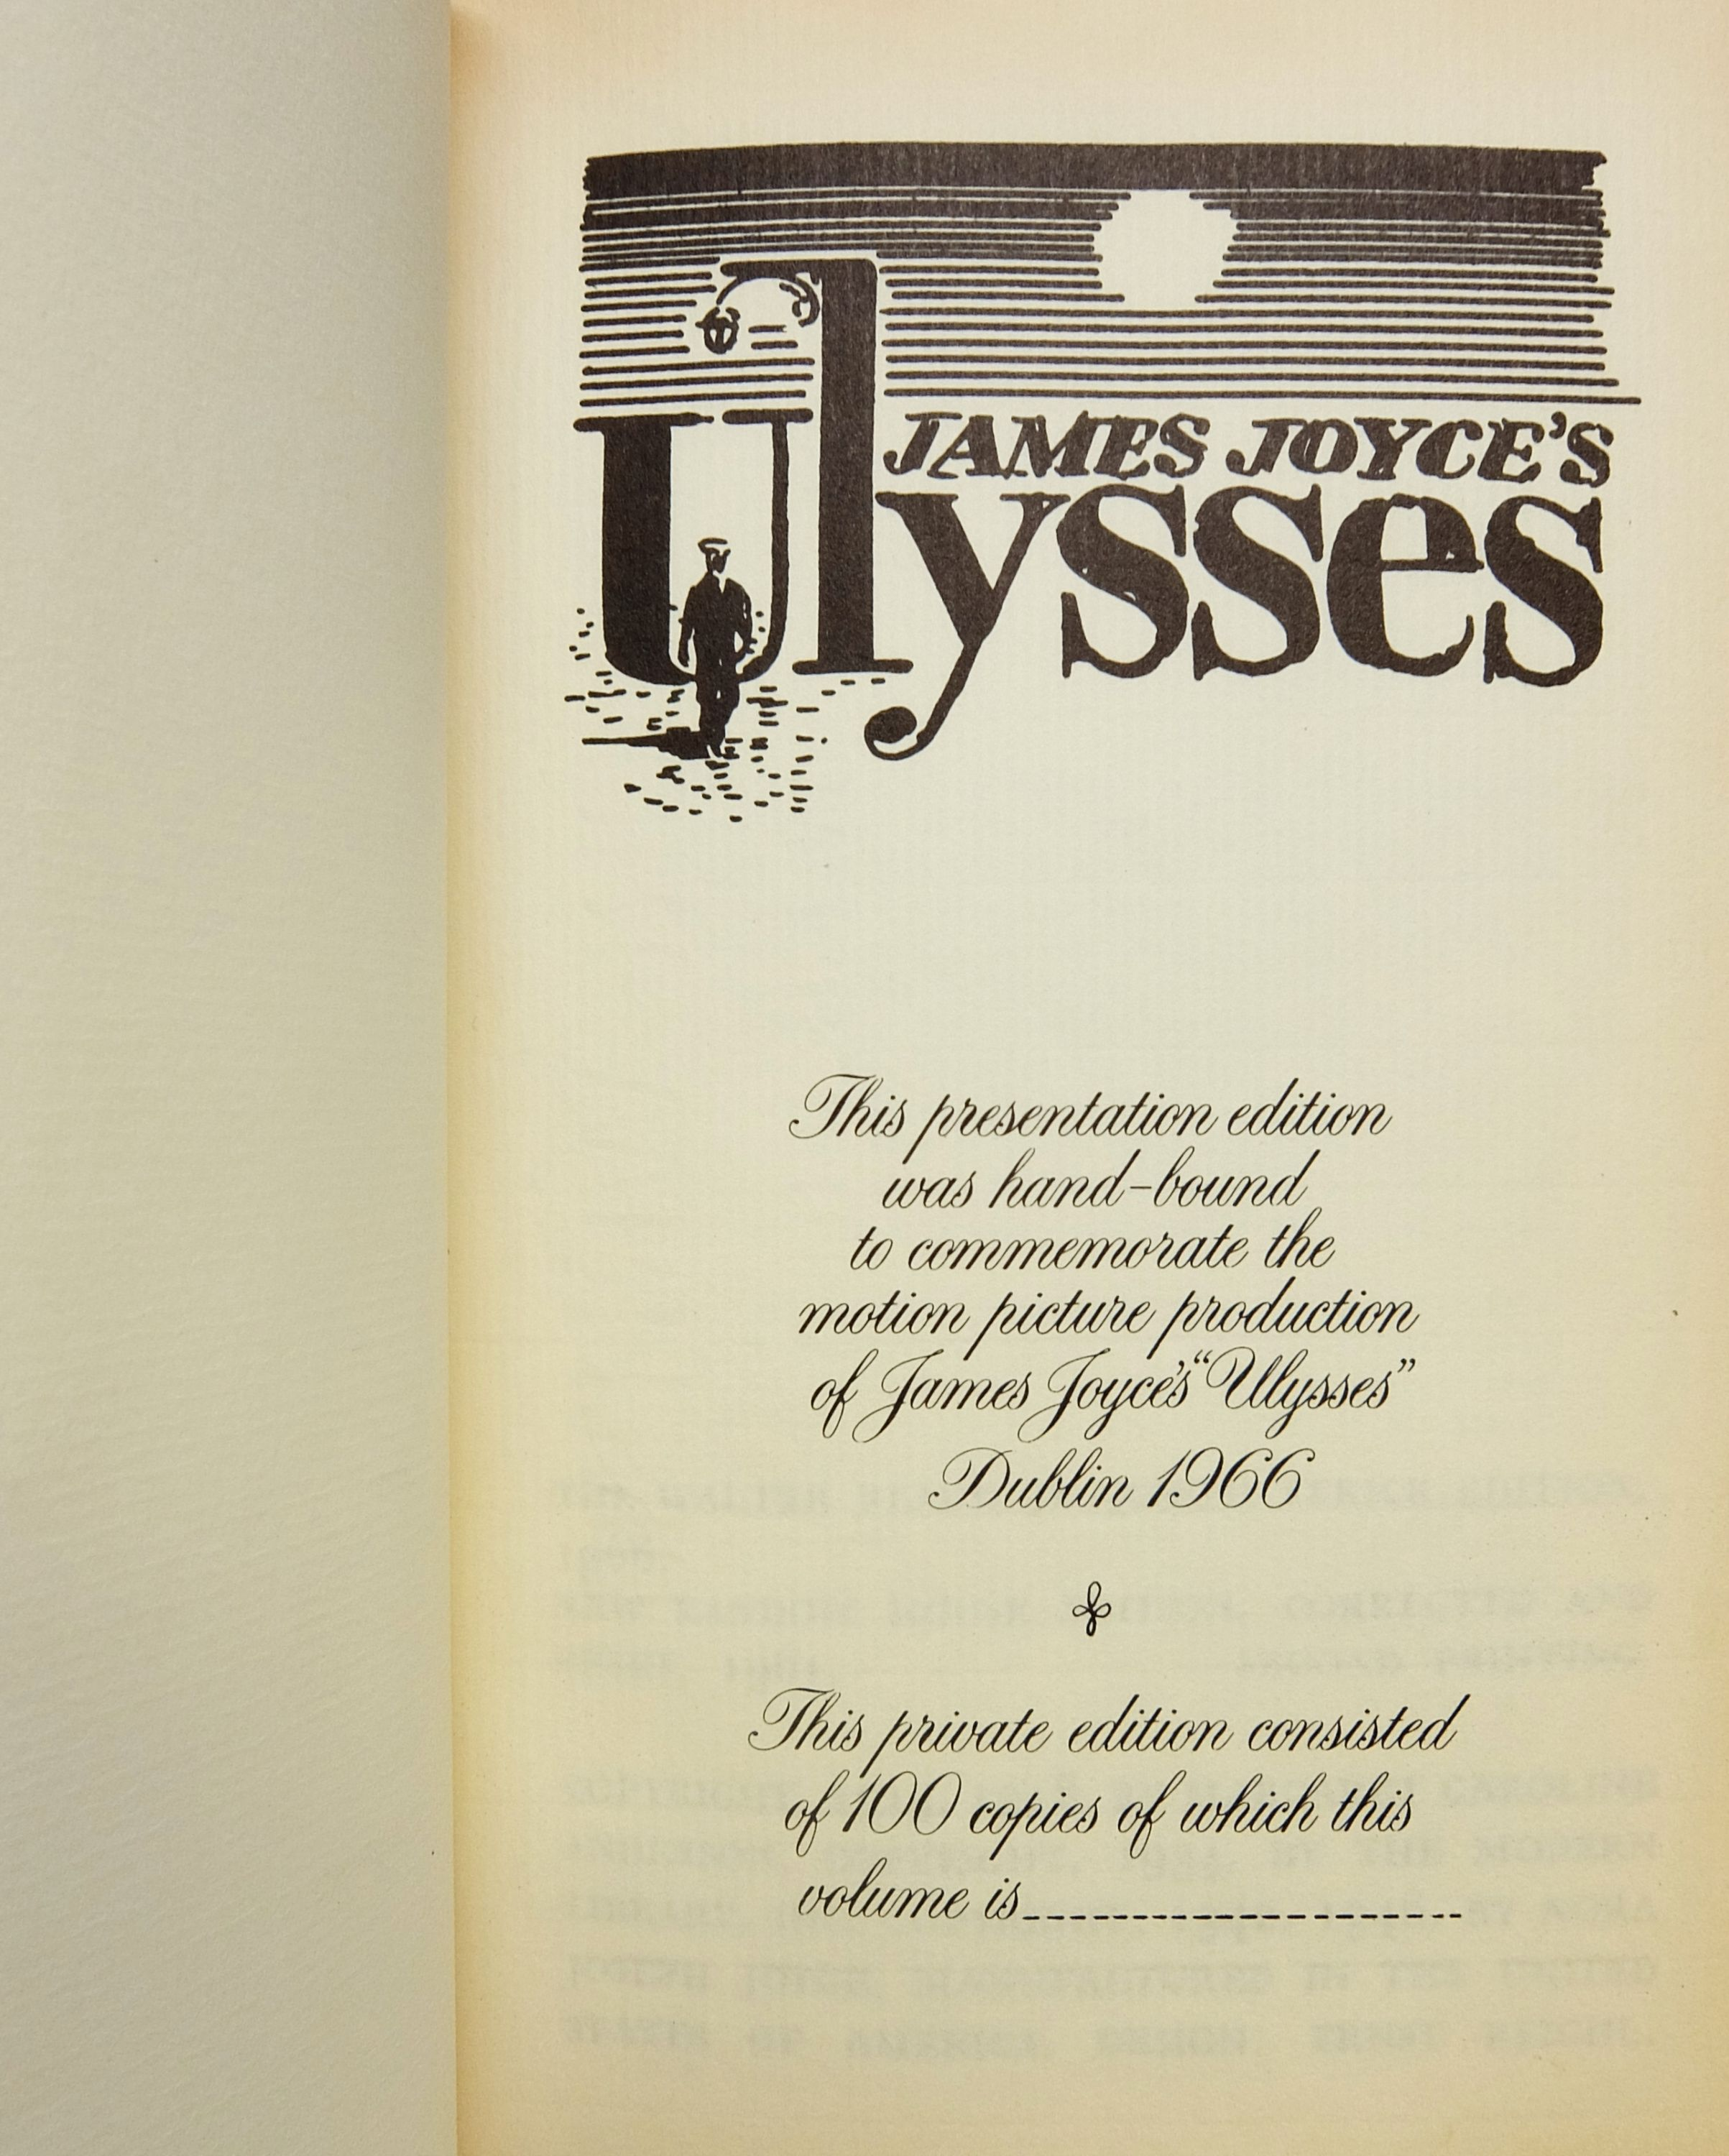 Ulysses A Presentation Edition Hand Bound To Commemorate The Motion Picture Production Of James Joyces Ulysses Dublin 1966 By James Joyce On Argosy